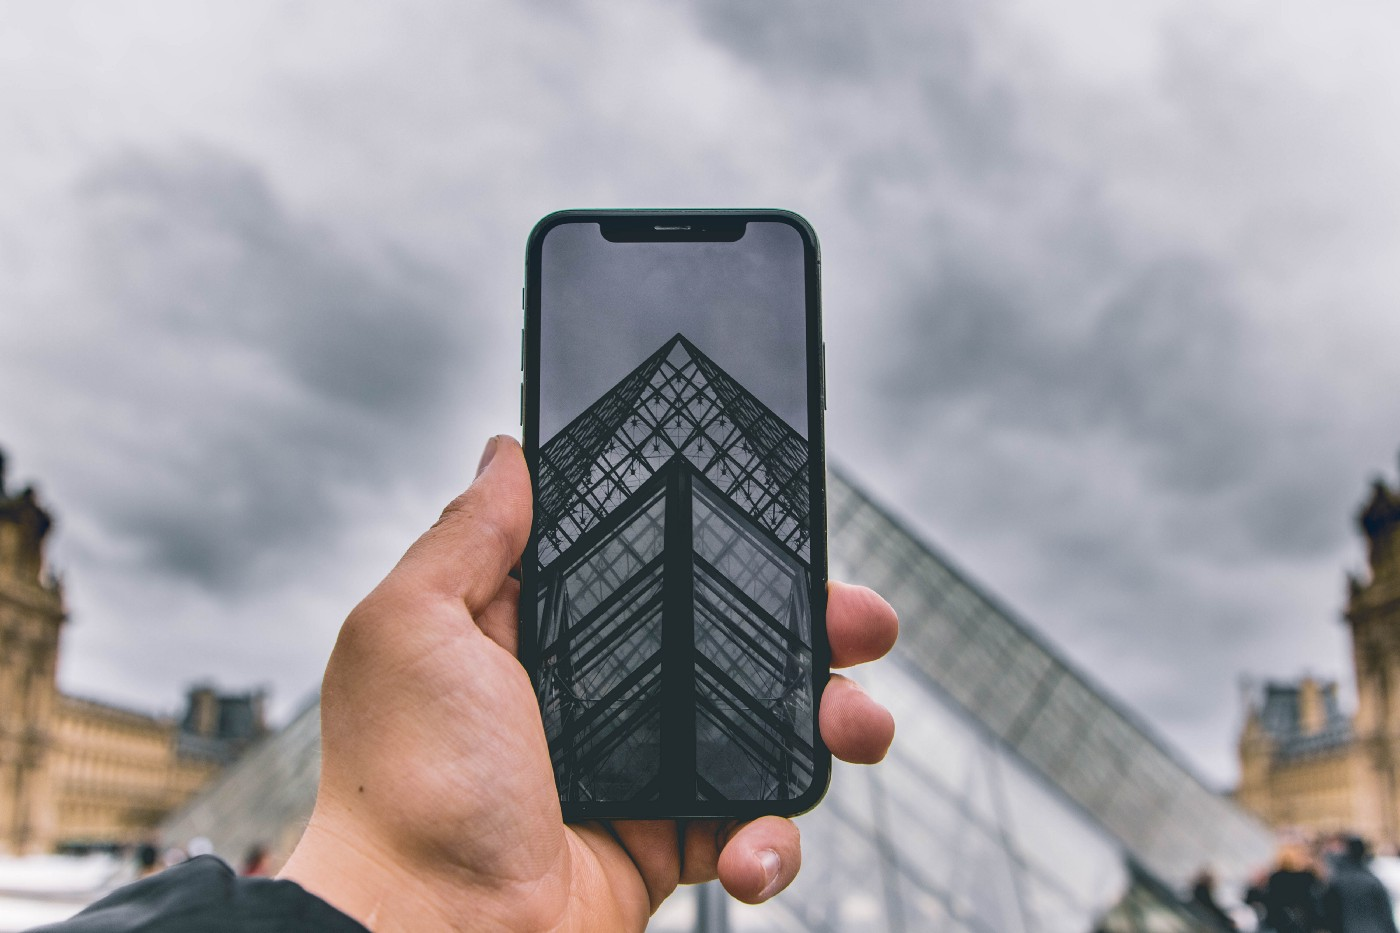 A picture of a smartphone